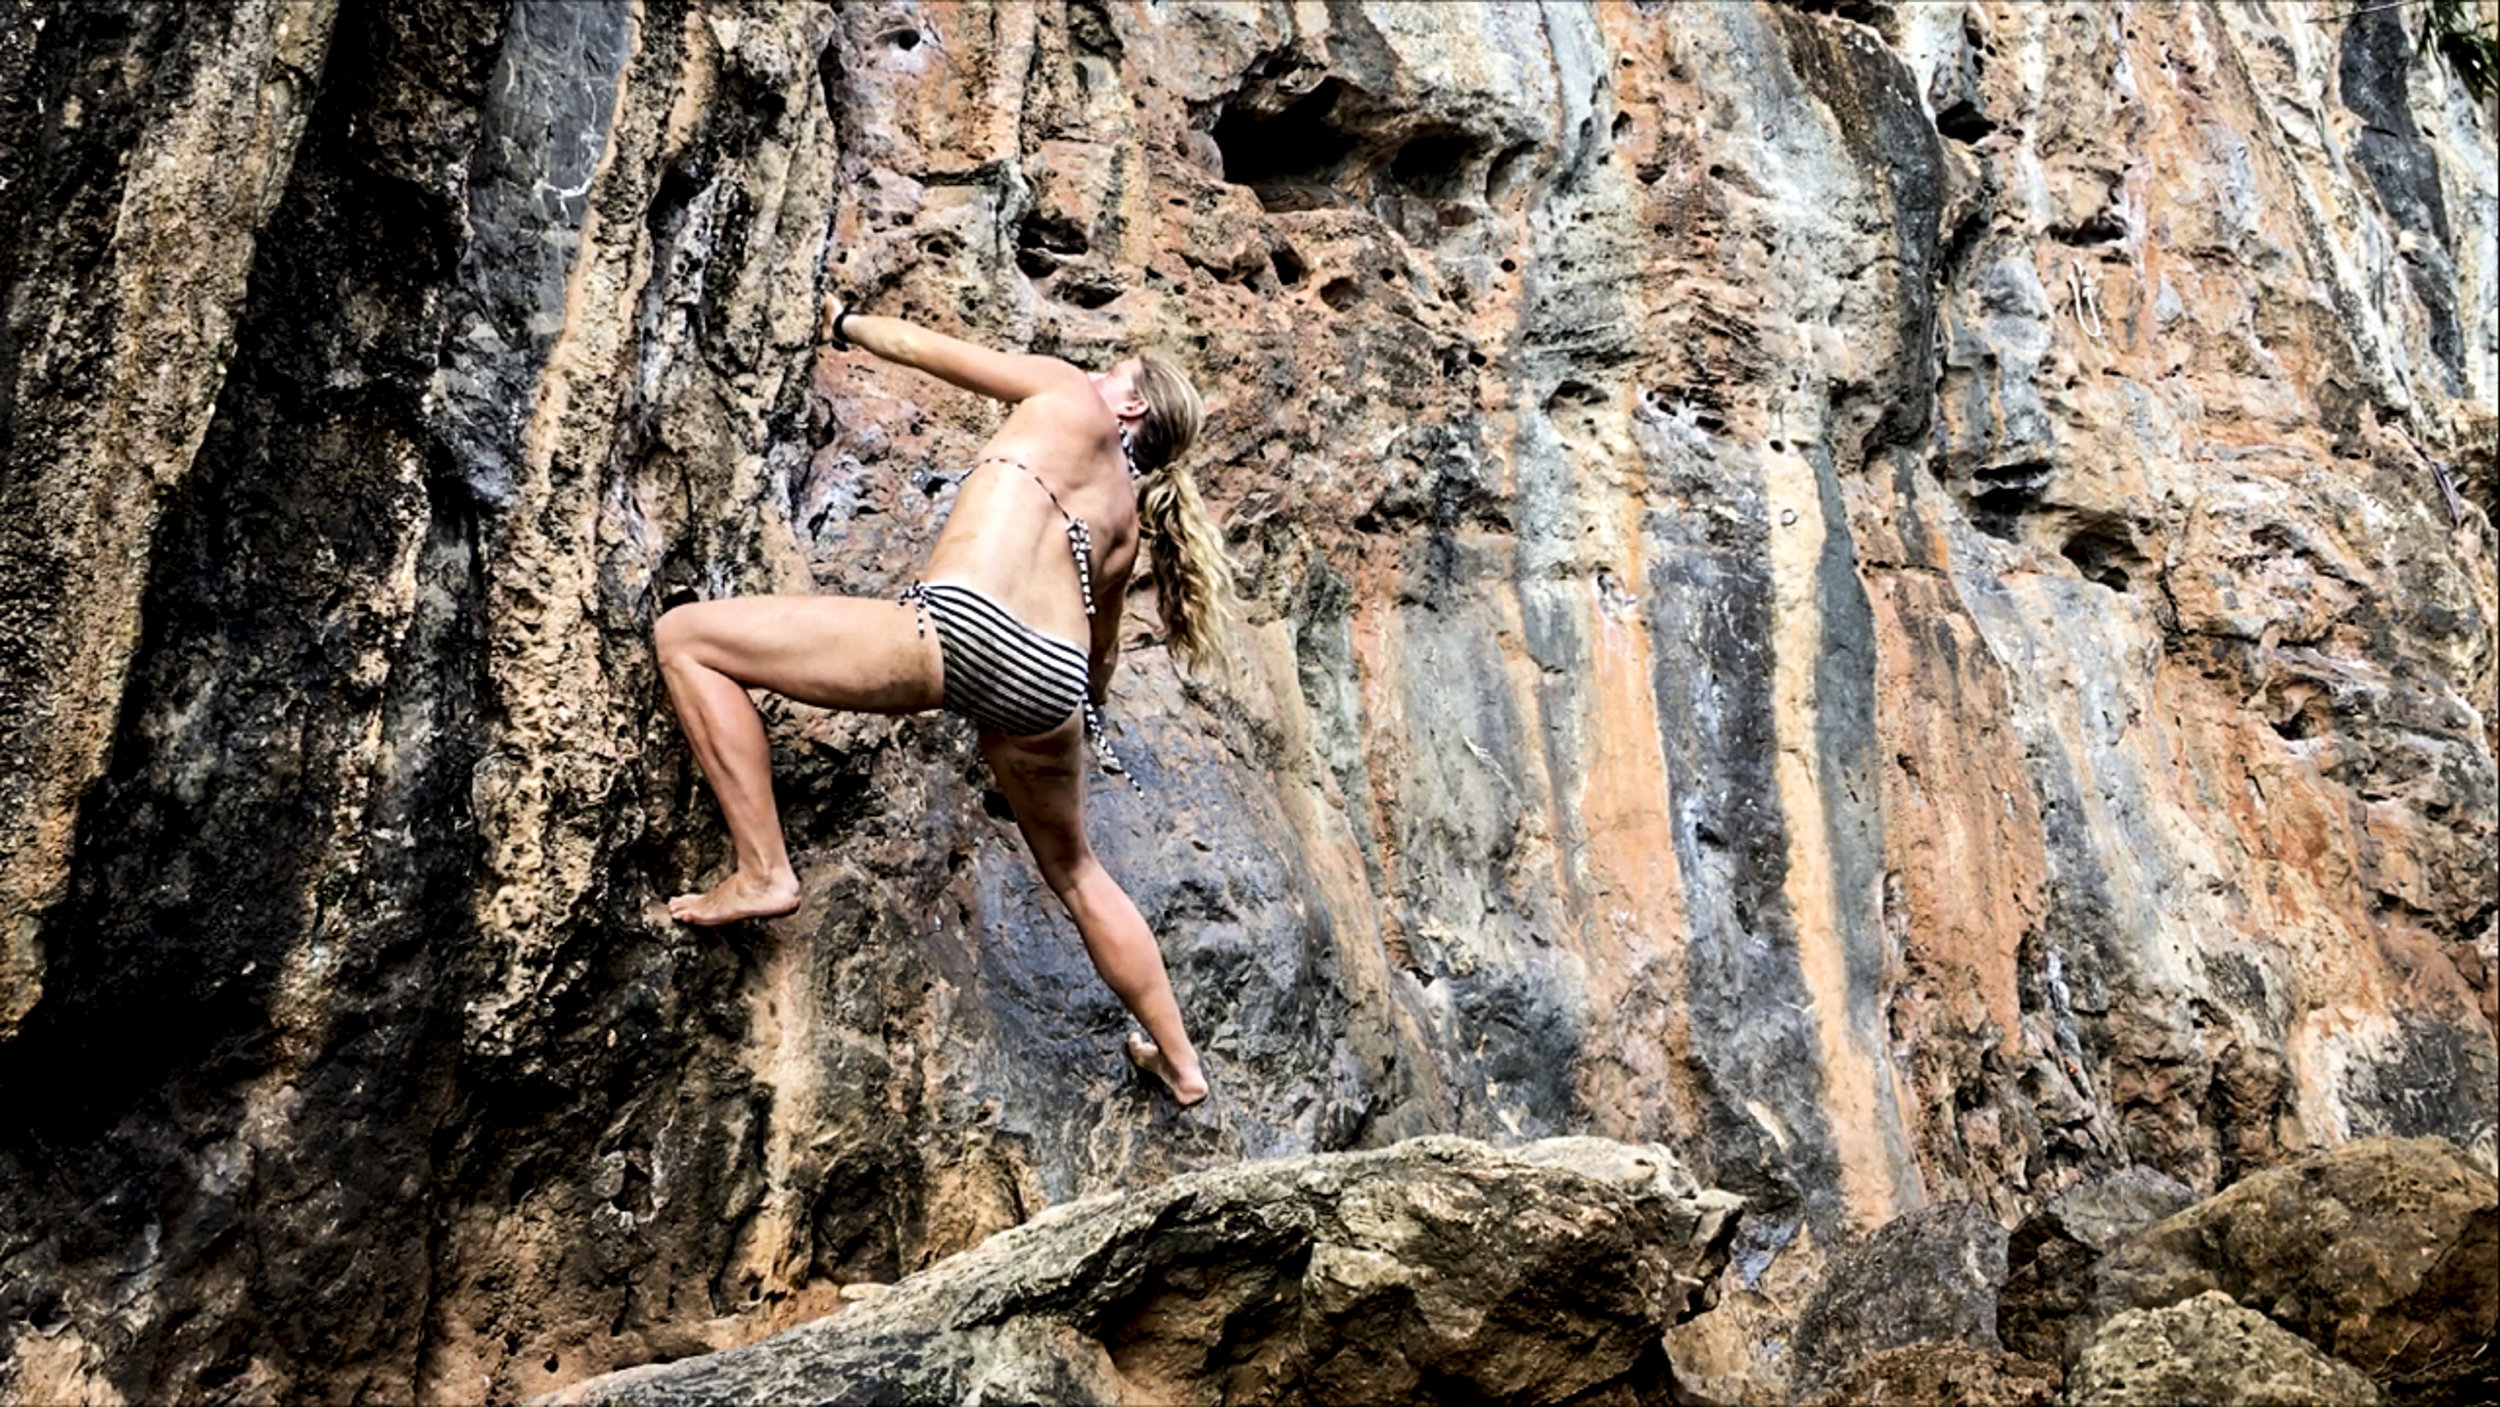 Simple movement over rock...  the ultimate joy of climbing. Shoes or no shoes, clothes or bathing suit.